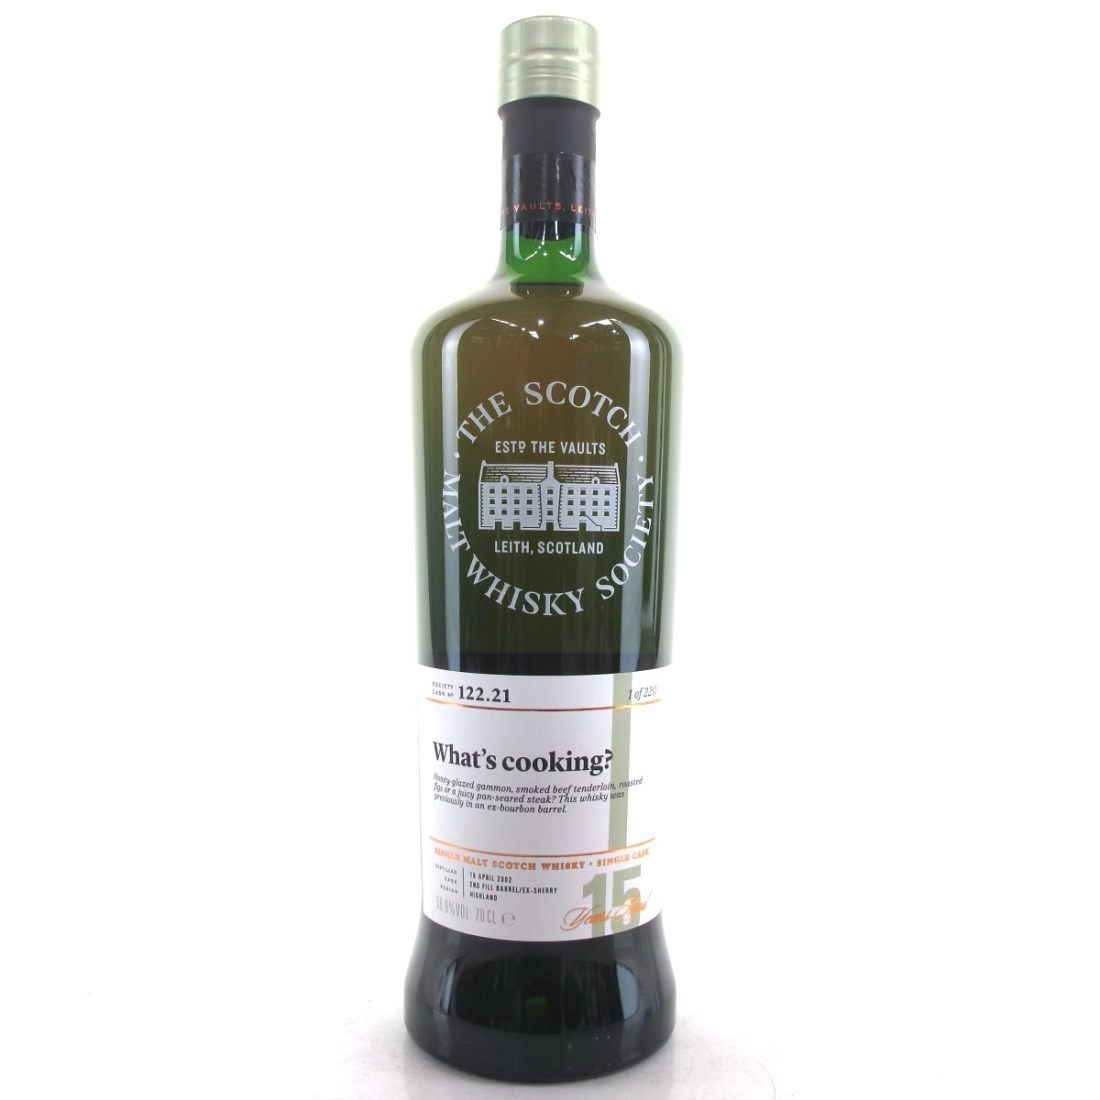 Loch Lomond / Croftengea 2002 SMWS 15 Year Old 122.21